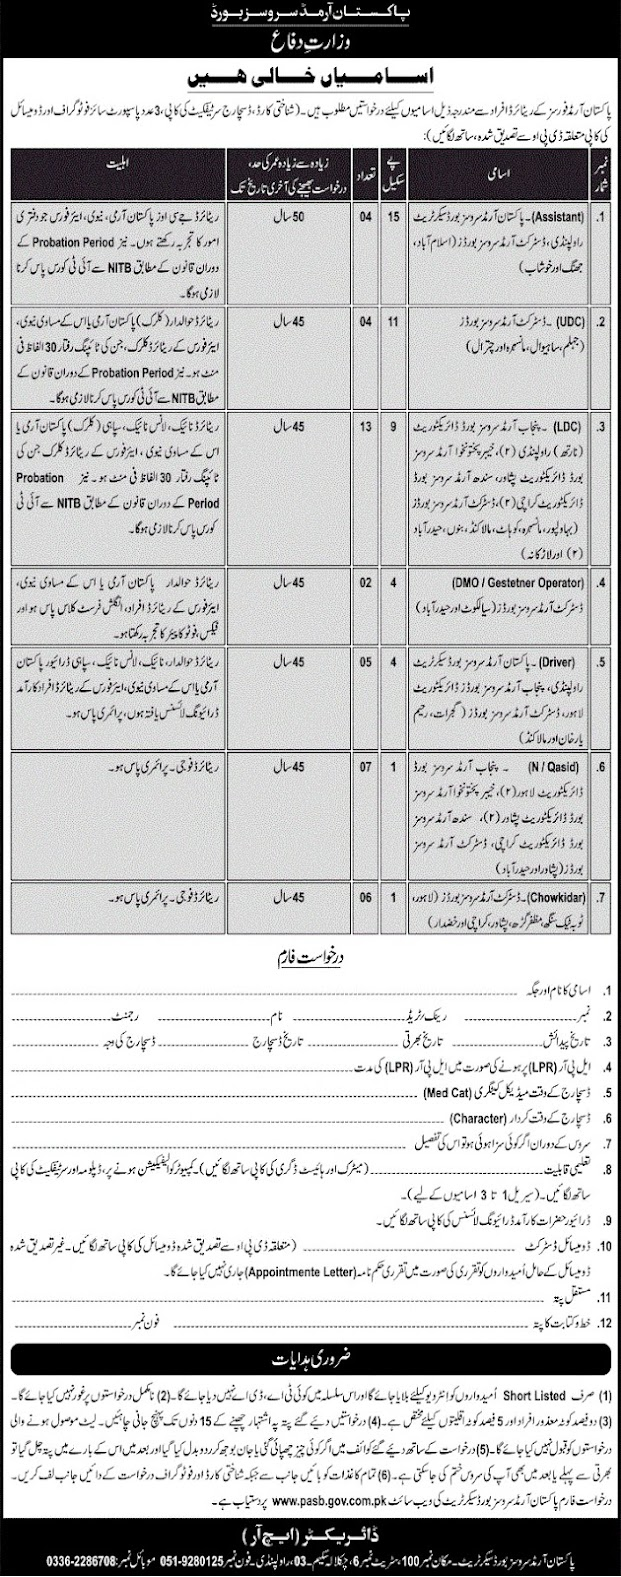 Ministry of Defence Latest Jobs 2021 in Pakistan Armed Services Board PASB